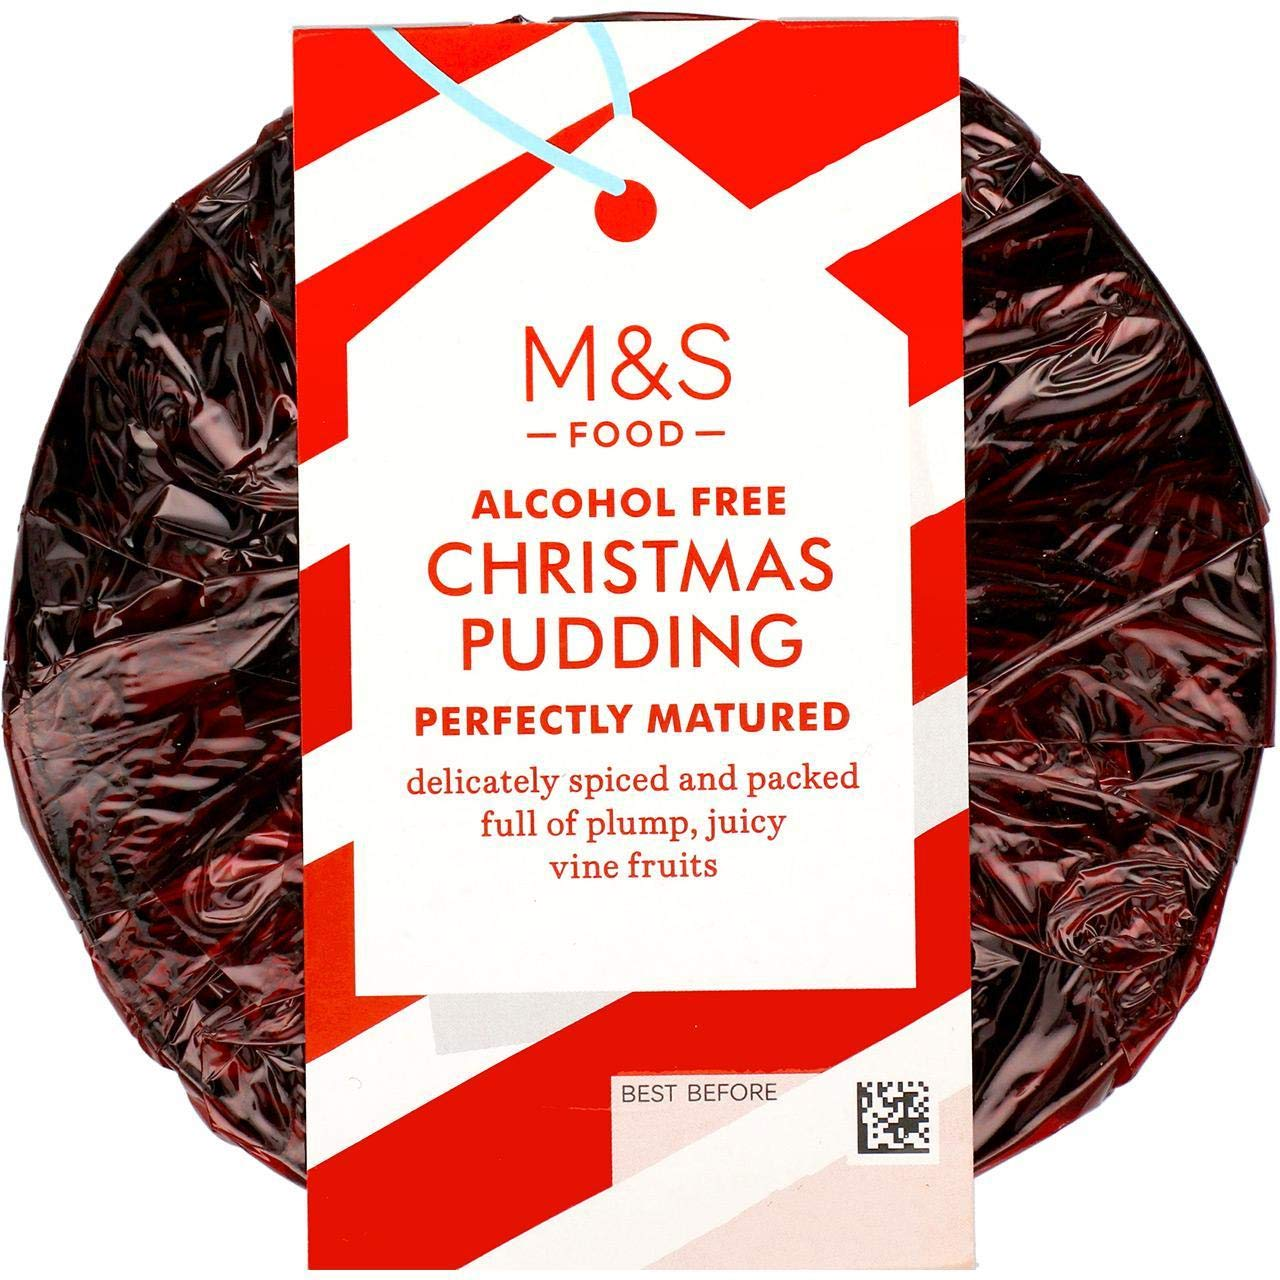 Marks and Spencer Alcohol Free 6 Months Matured Christmas Pudding 454g - Serves 4